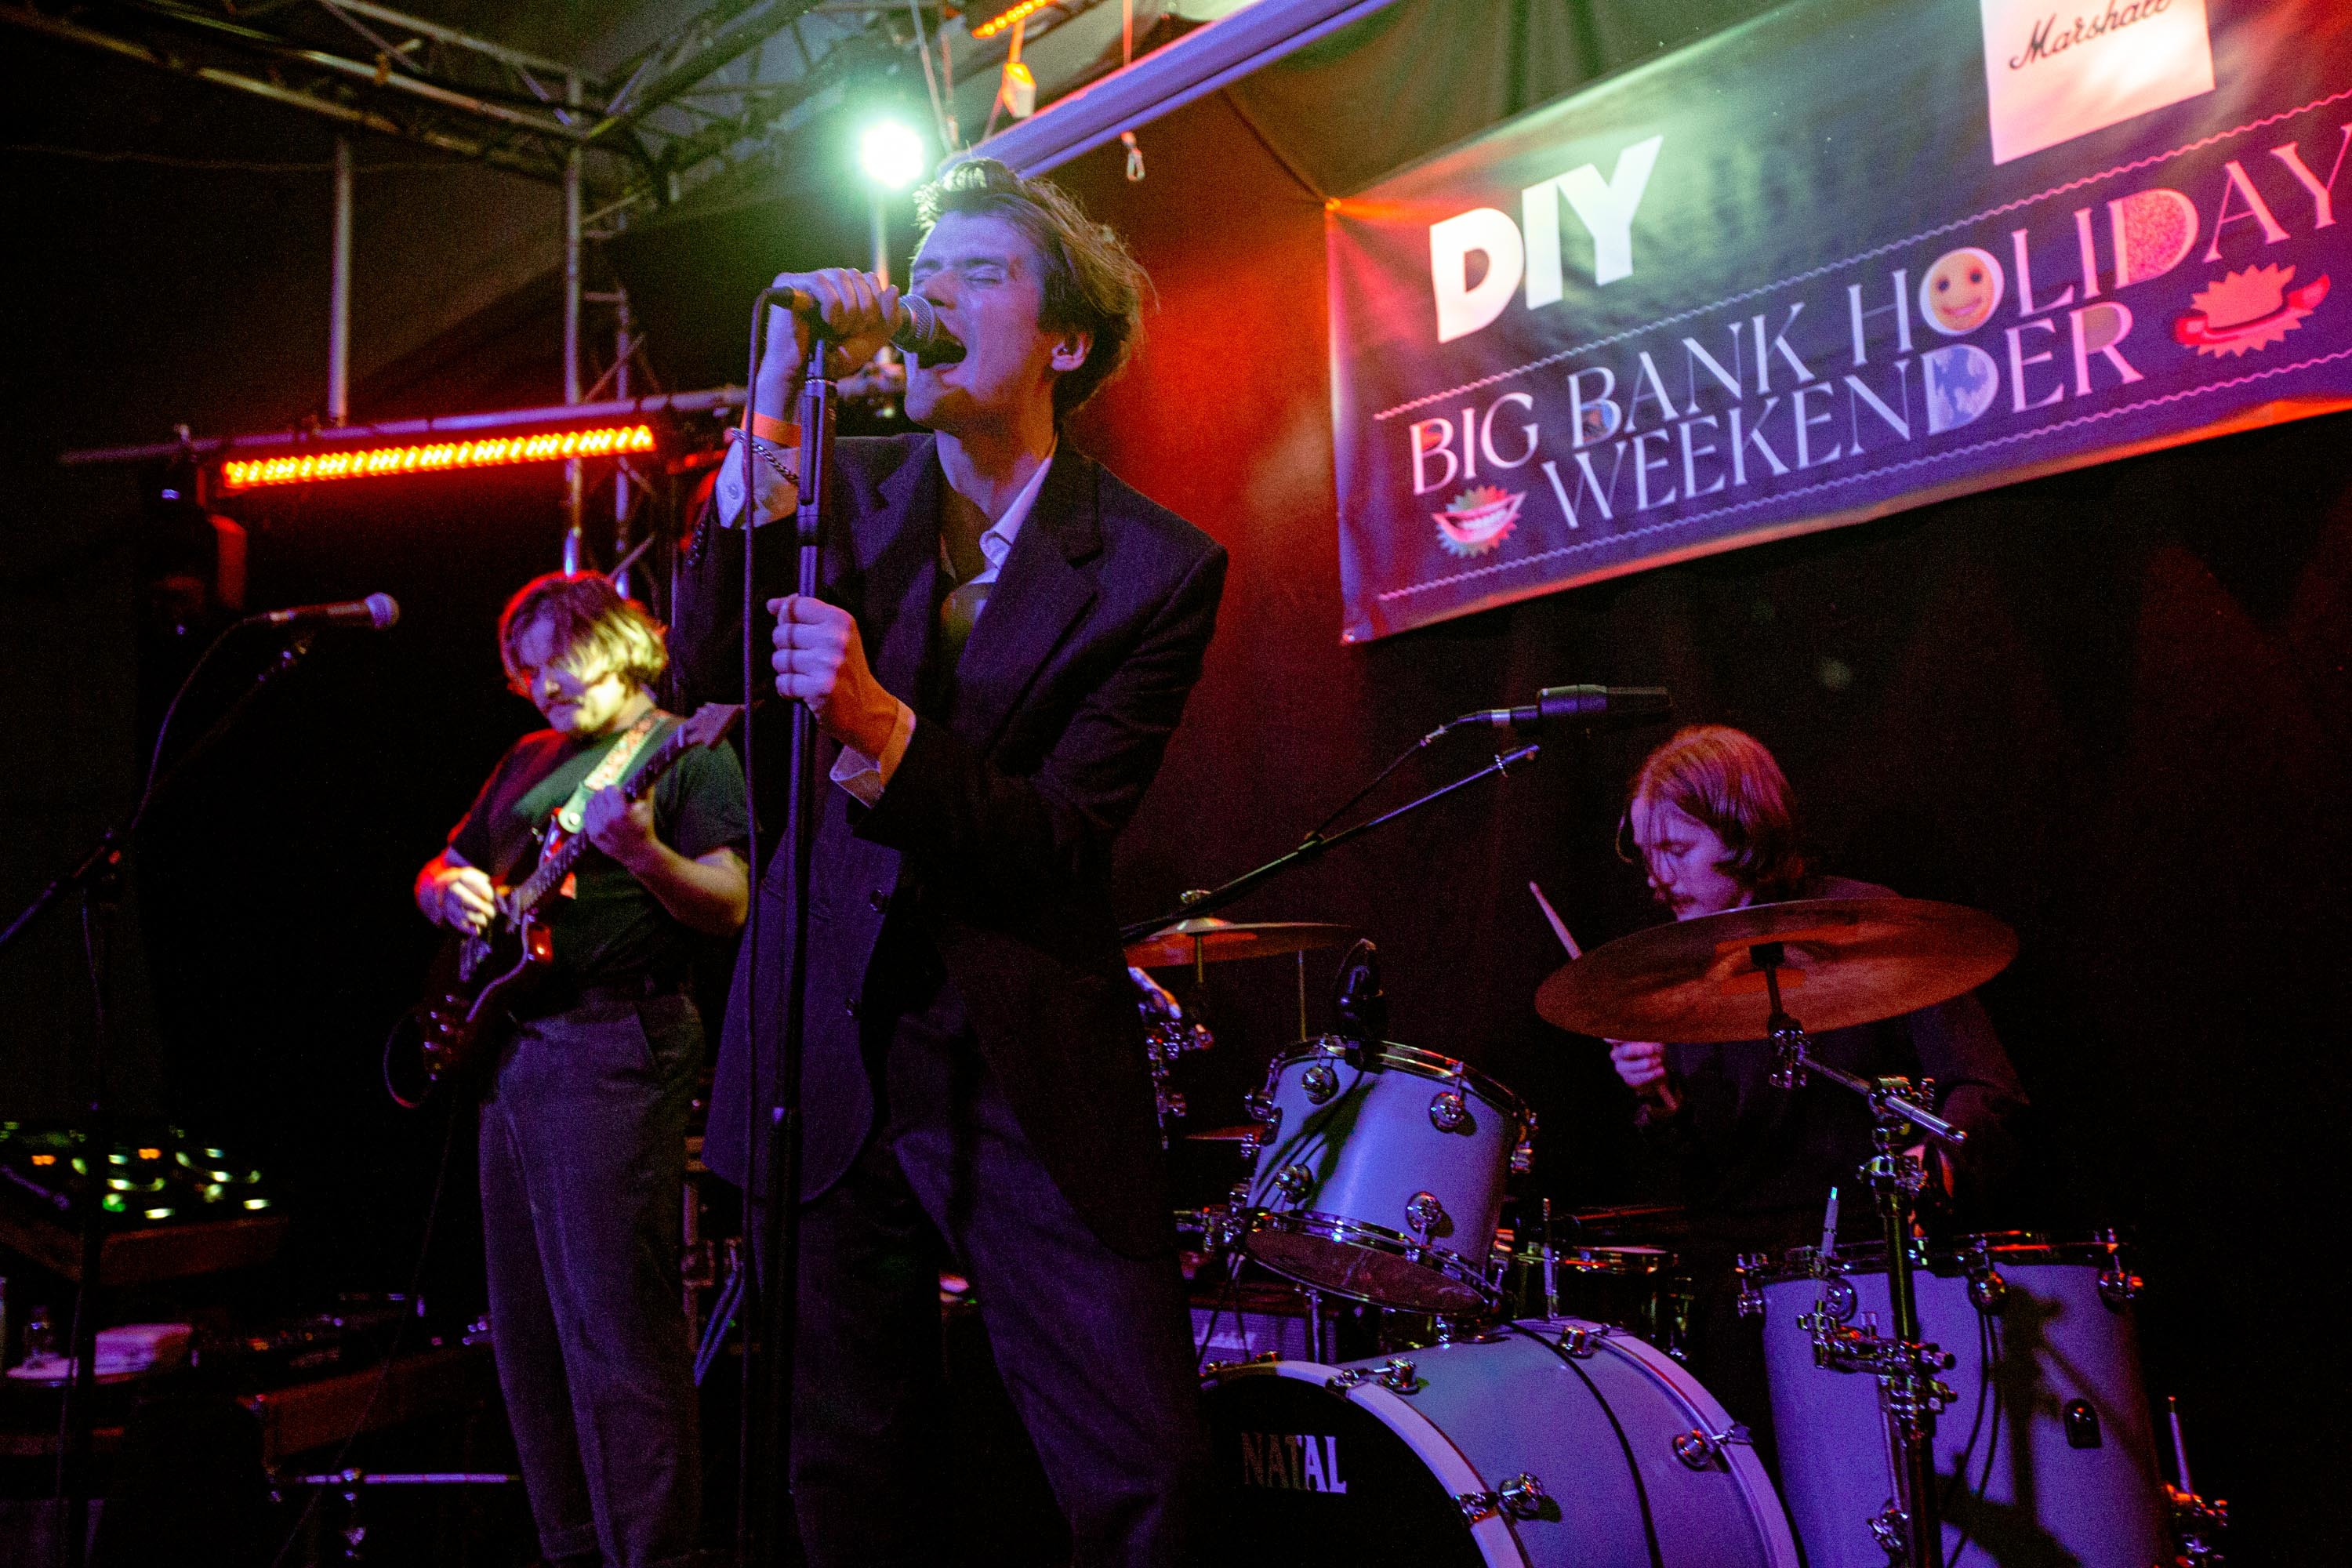 Sorry, Goat Girl, Connie Constance and more set Hackney ablaze at DIY's Big Bank Holiday Weekender